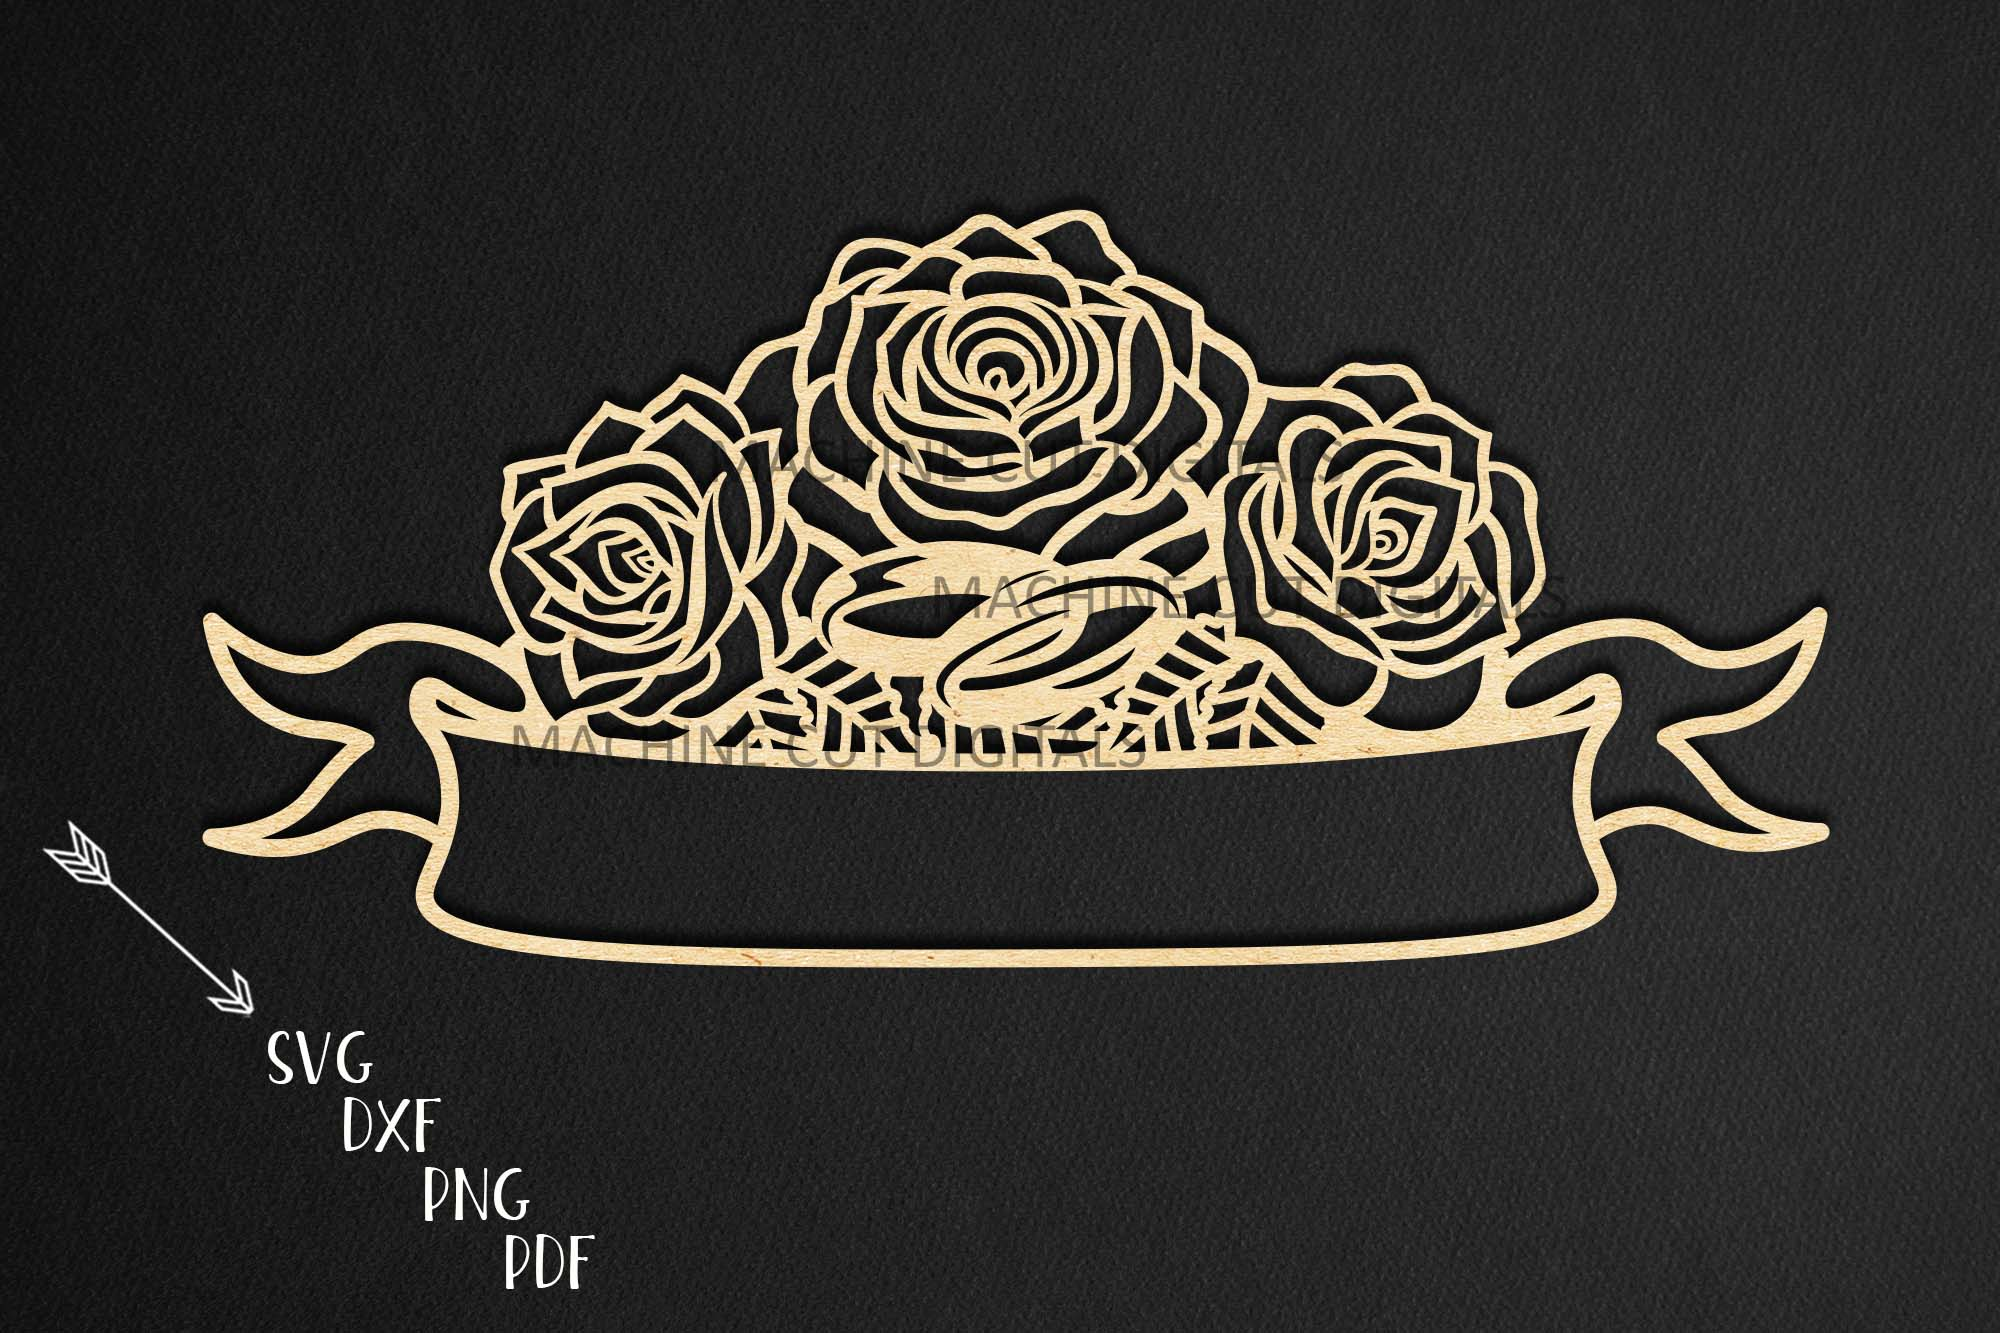 Wedding roses with rings banner for names svg dxf laser cut example image 1